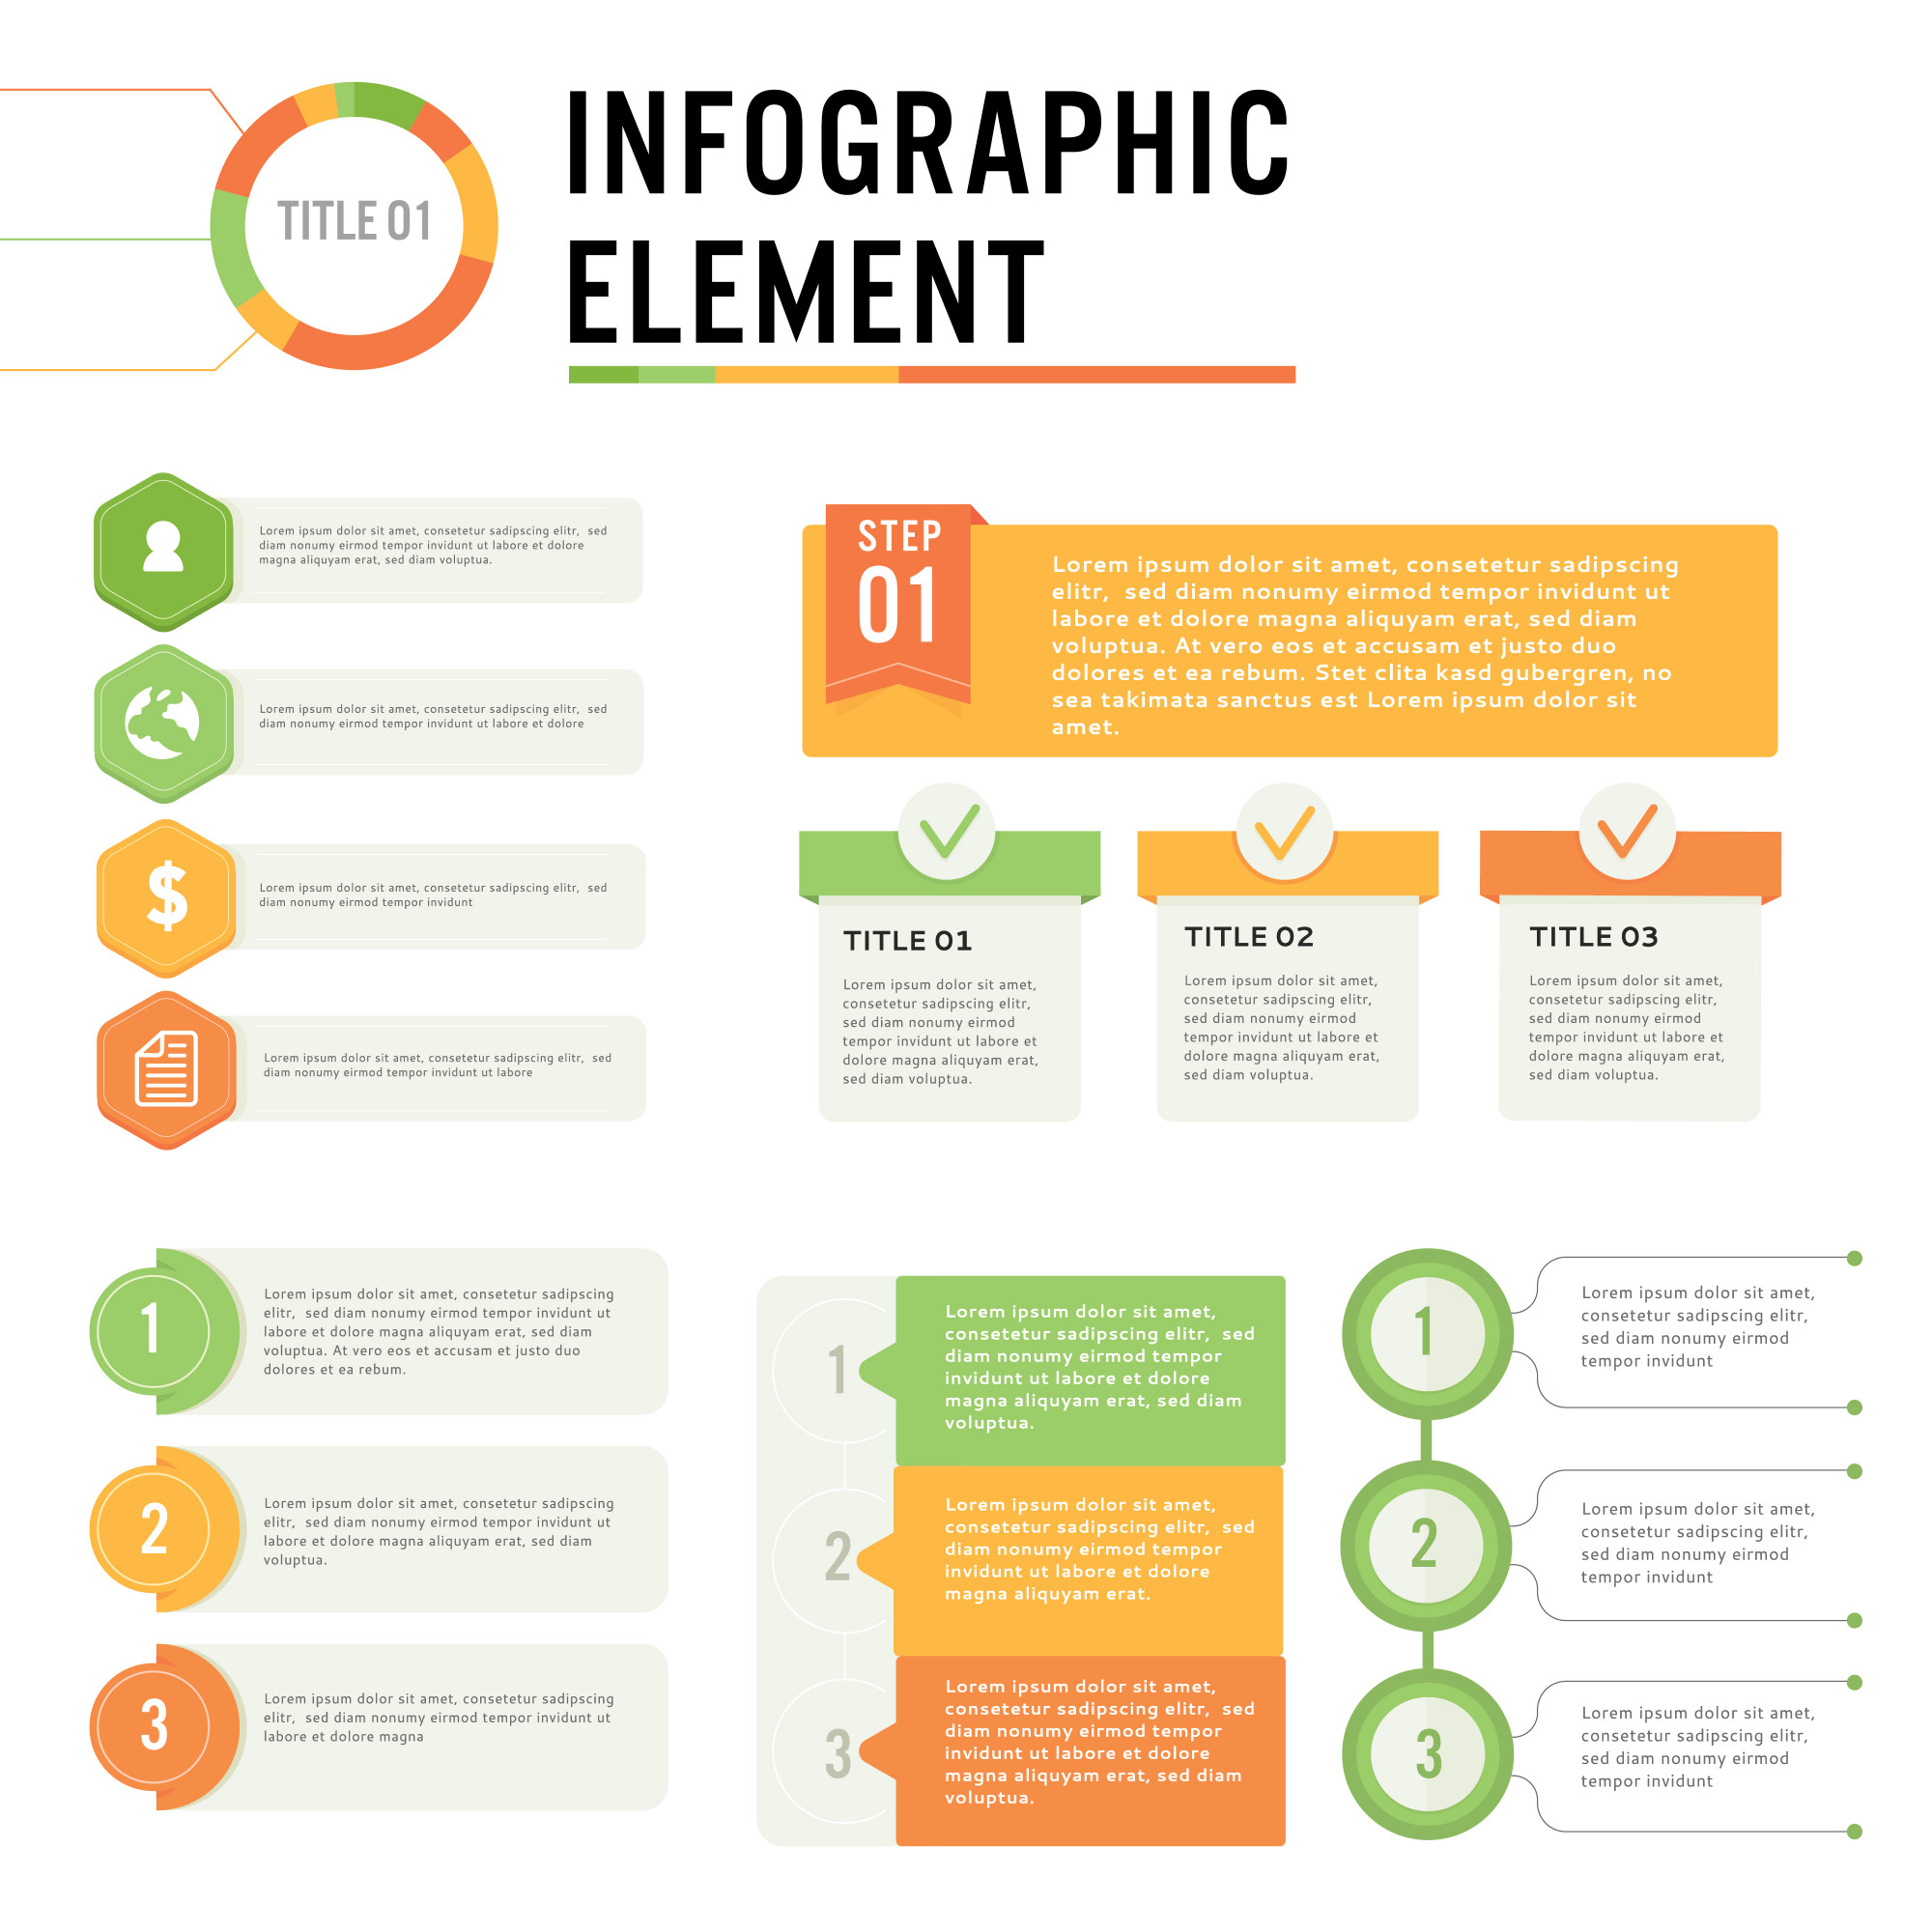 Print vector illustration infographic element